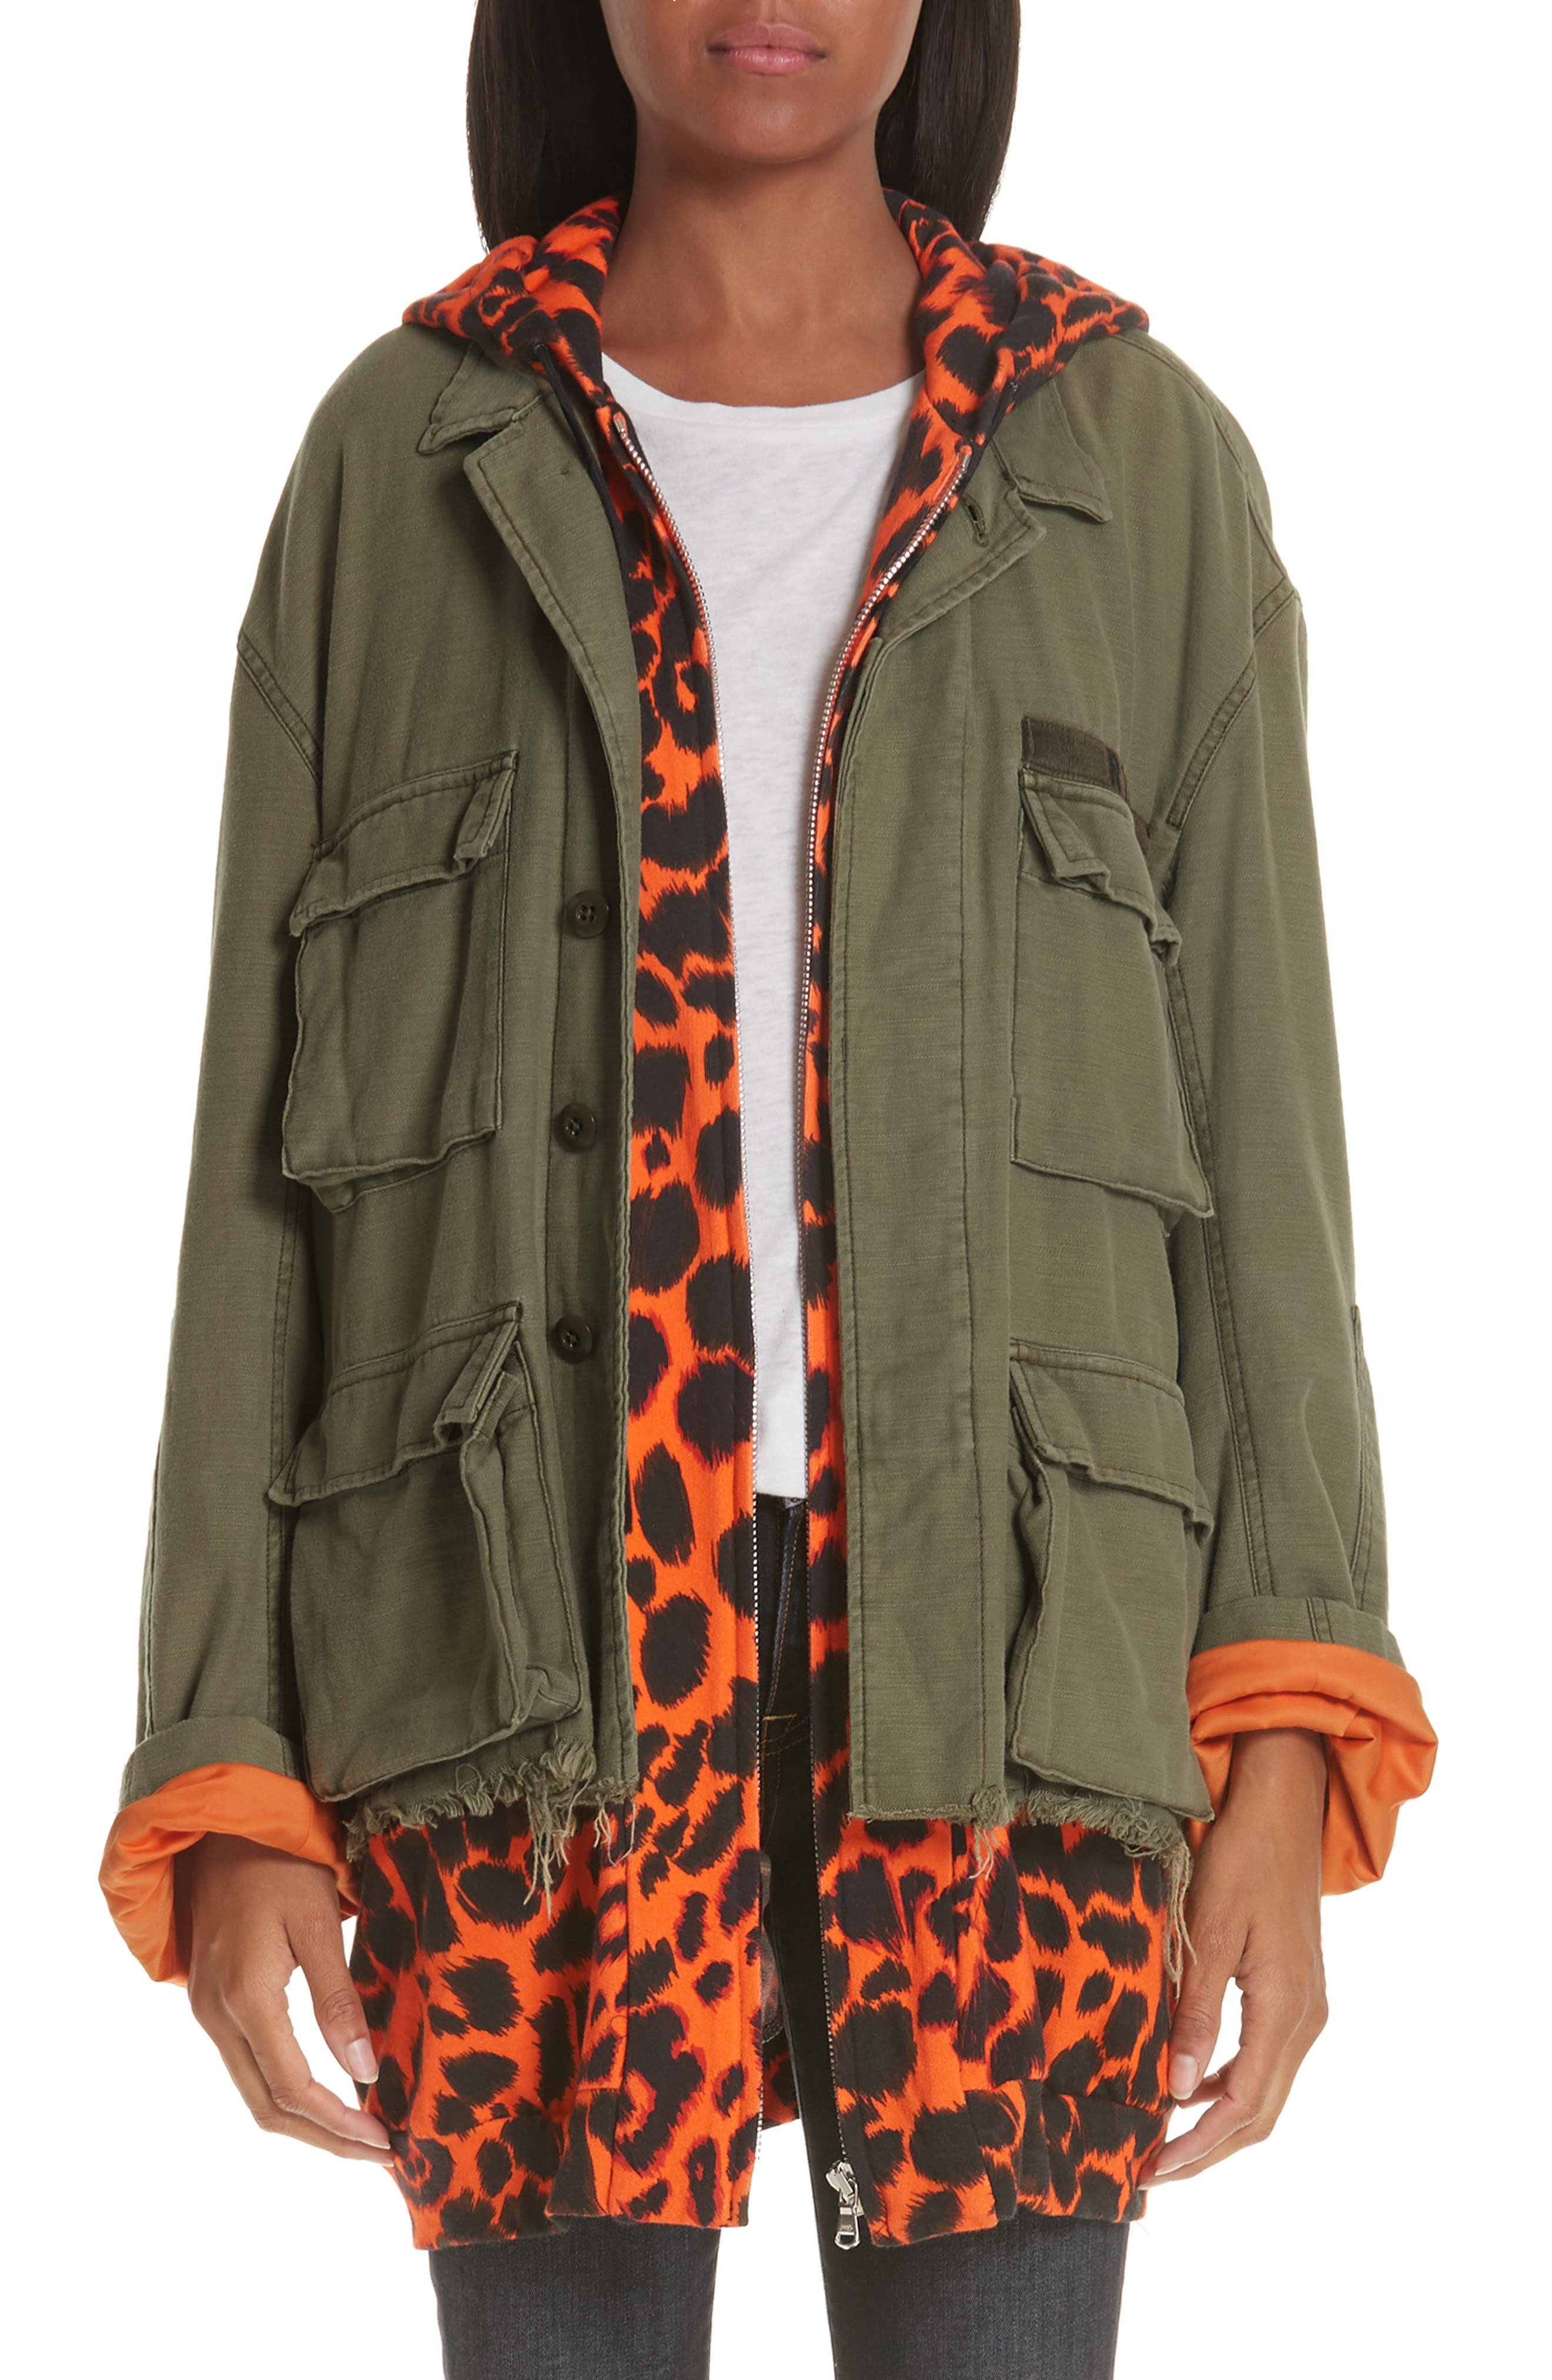 Abu Jacket with Long Leopard Print Hoodie,                             Main thumbnail 1, color,                             OLIVE/ ORANGE